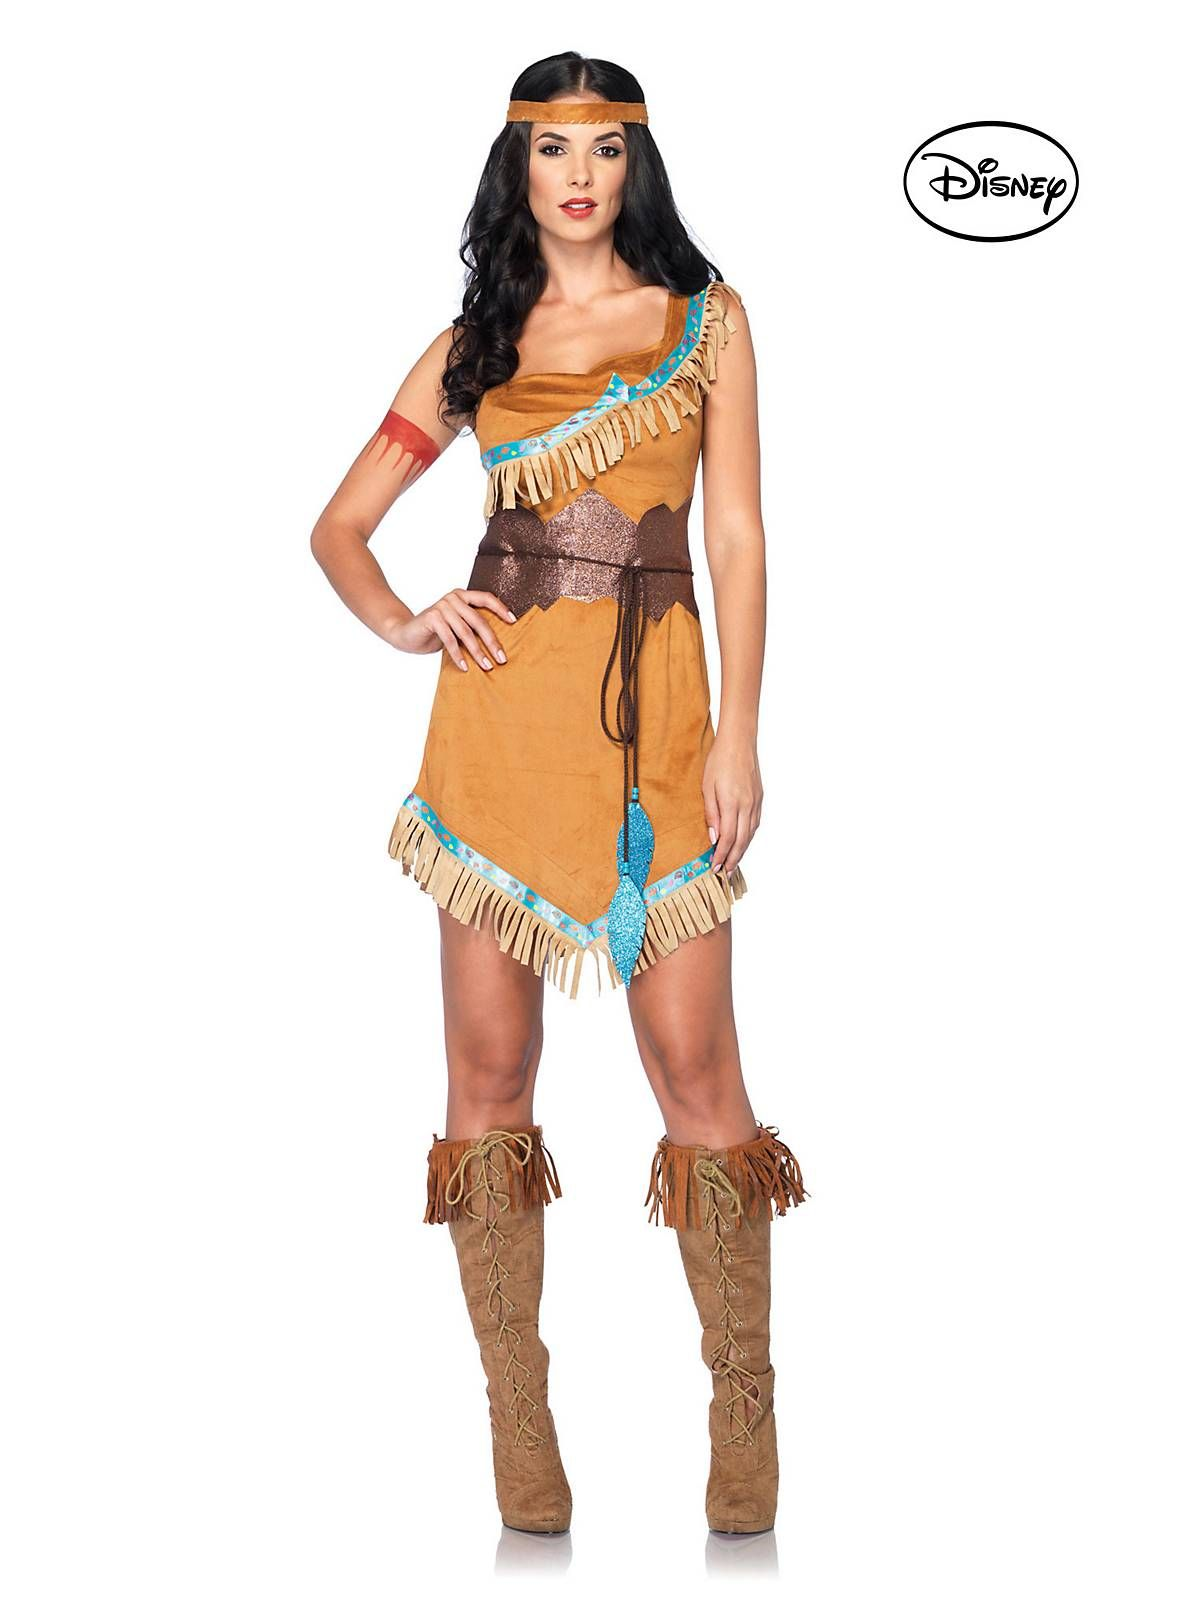 Princess Pocahontas Costume | Cheap Disney Princess Costumes for Adults  sc 1 st  Pinterest : cheap adult princess costume  - Germanpascual.Com